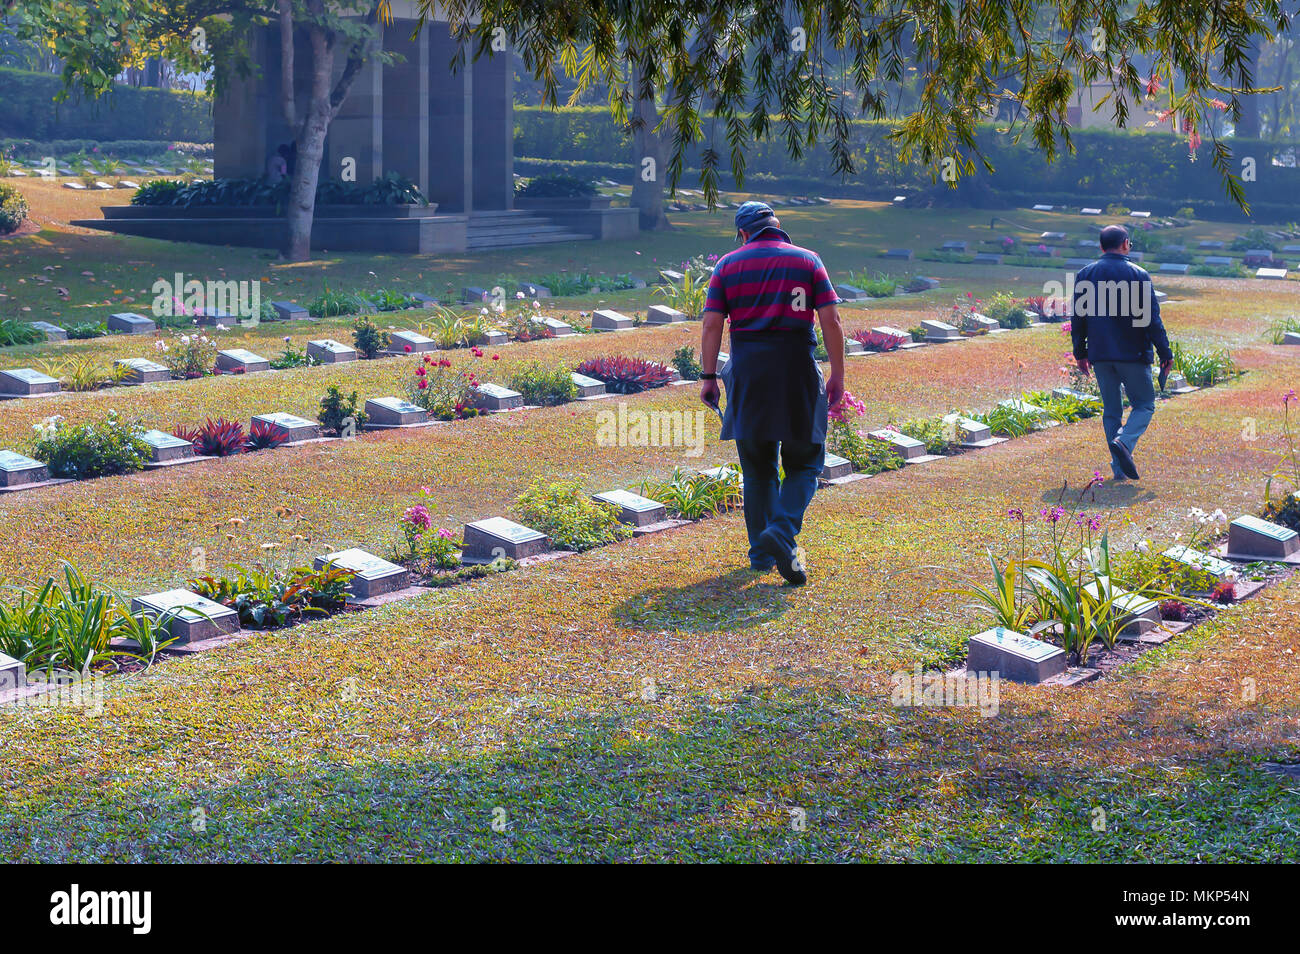 Visitors at the WWII cemetery in Guwahati, India. The war cemetery was set up during WWII for burial of servicemen killed in the war. - Stock Image